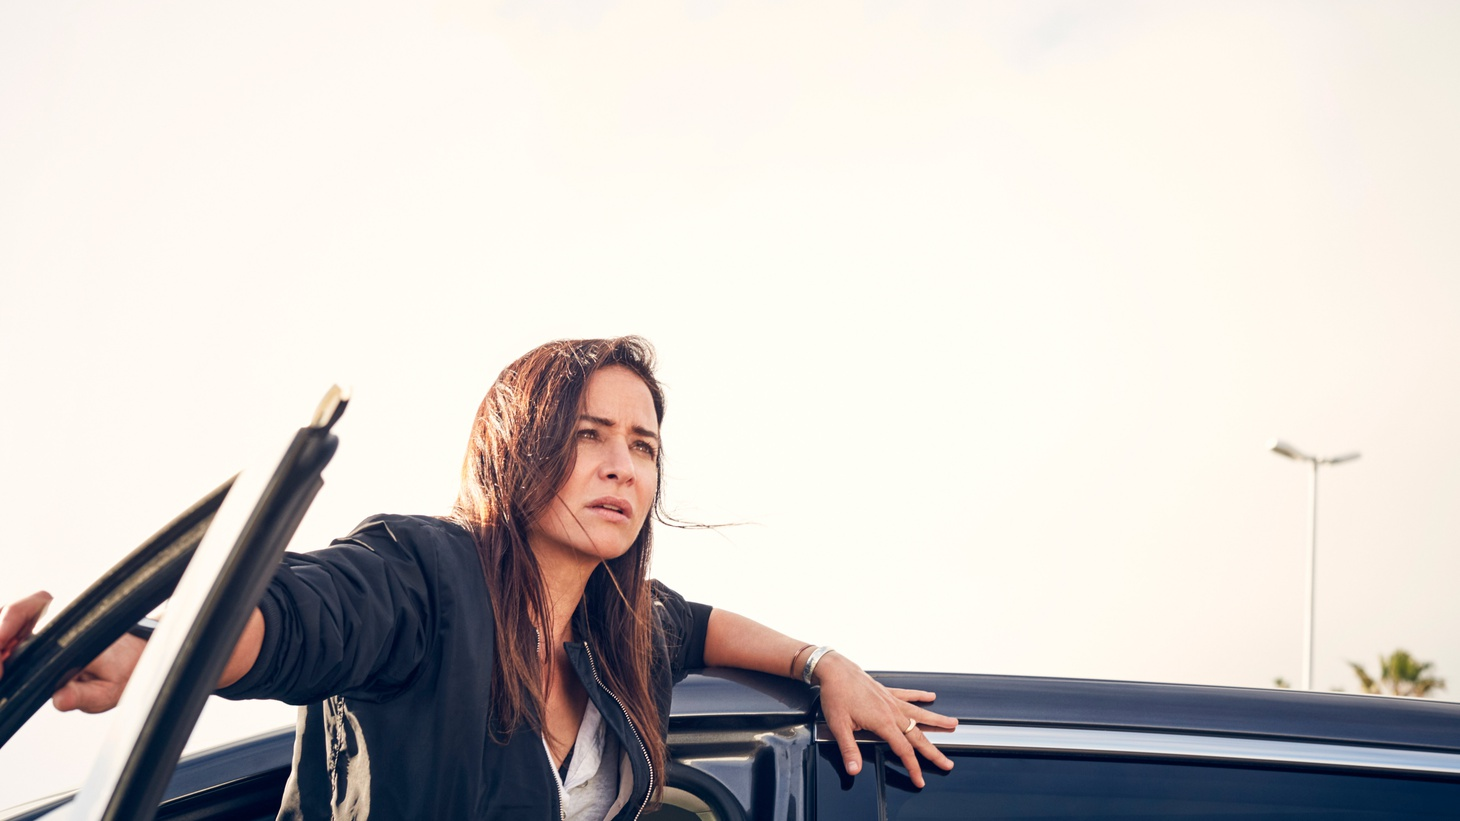 Better Things co-creator Pamela Adlon tells us about learning to stop second guessing herself and embracing many roles -- writer, director, producer and actor. And yes, we ask her about Louis C.K. We spoke to Adlon just days before the New York Times published a story alleging that C.K., her long-time collaborator, had a history of sexual misconduct.